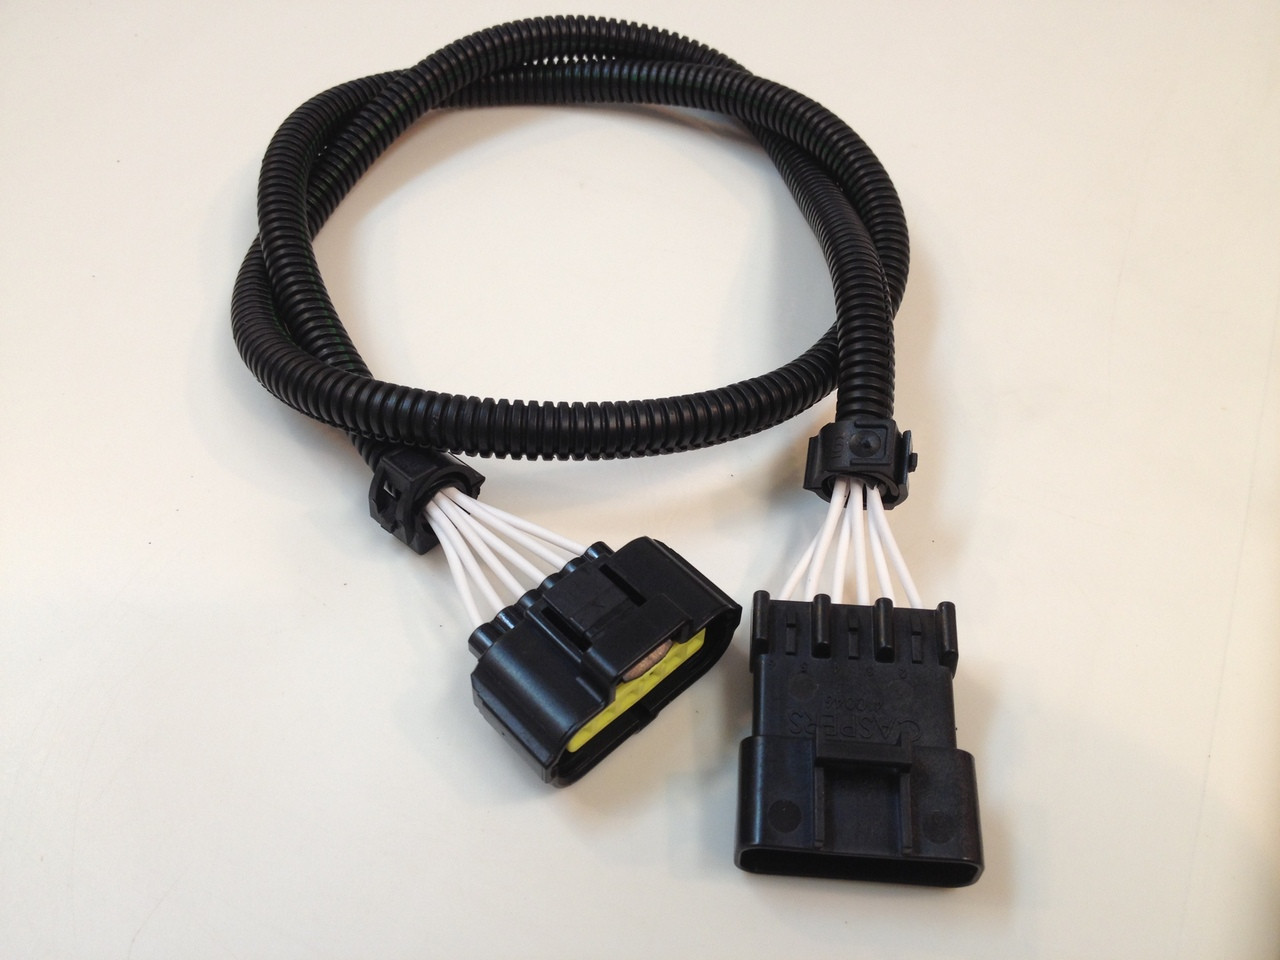 jms maf extension harness for 1996 2004 mustang [ 1280 x 960 Pixel ]